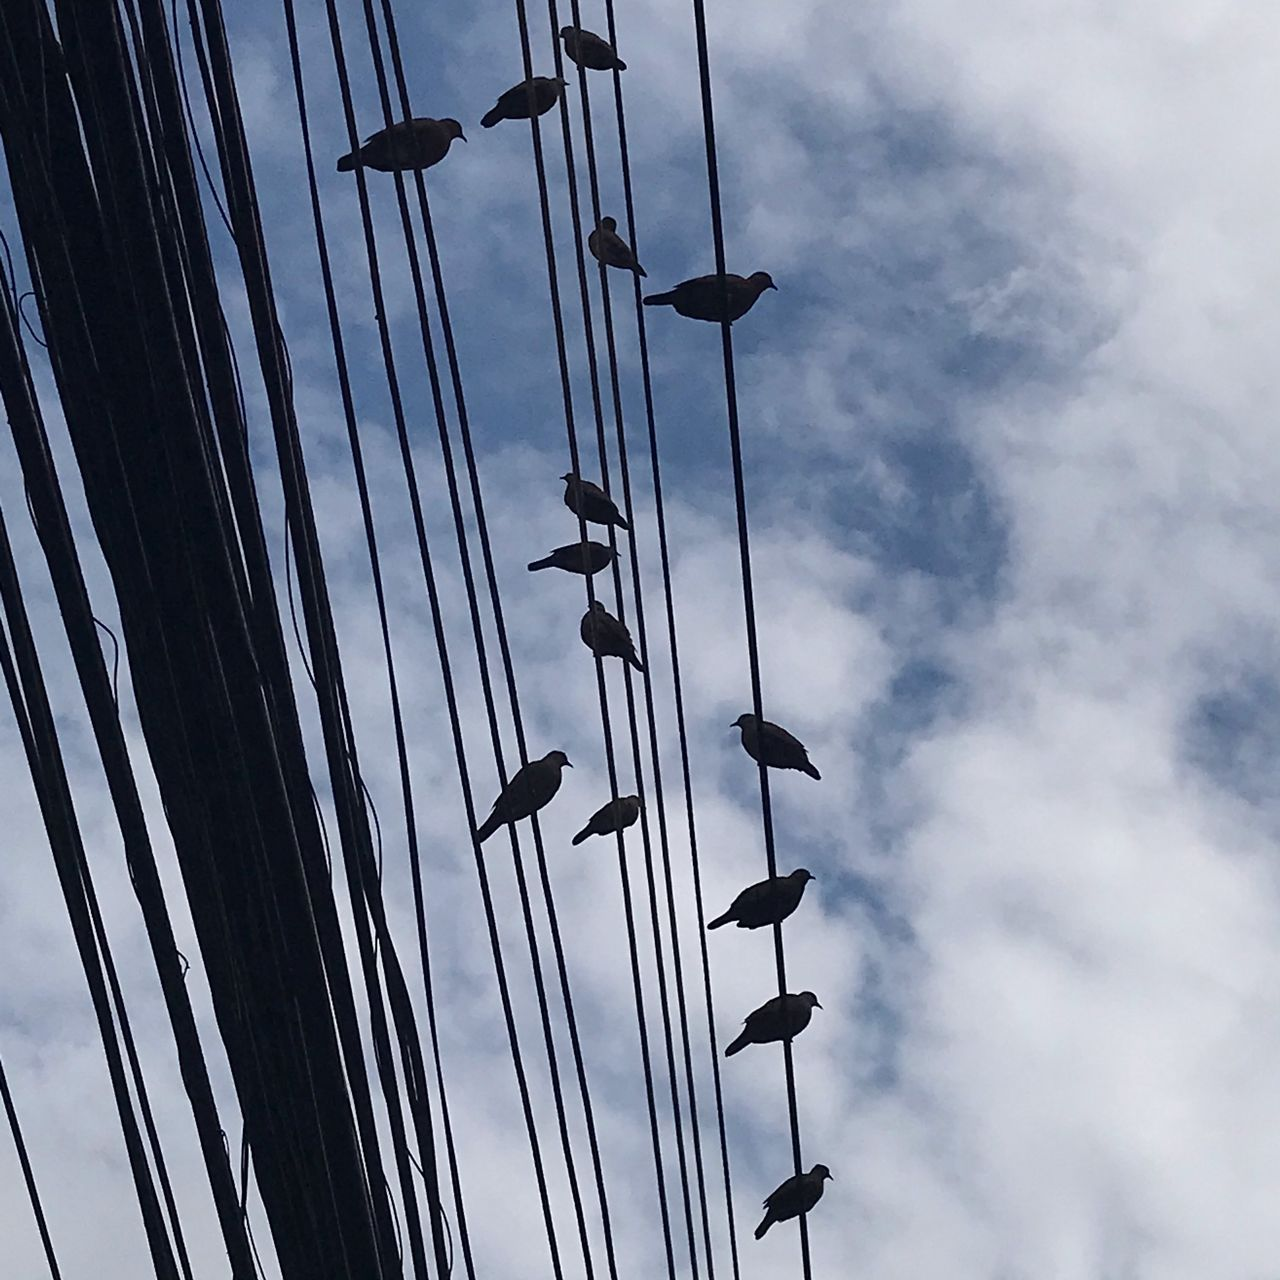 sky, cloud - sky, low angle view, day, nature, no people, outdoors, mast, vertebrate, pole, bird, sailboat, in a row, animal, animal themes, silhouette, group of animals, animals in the wild, perching, rope, directly below